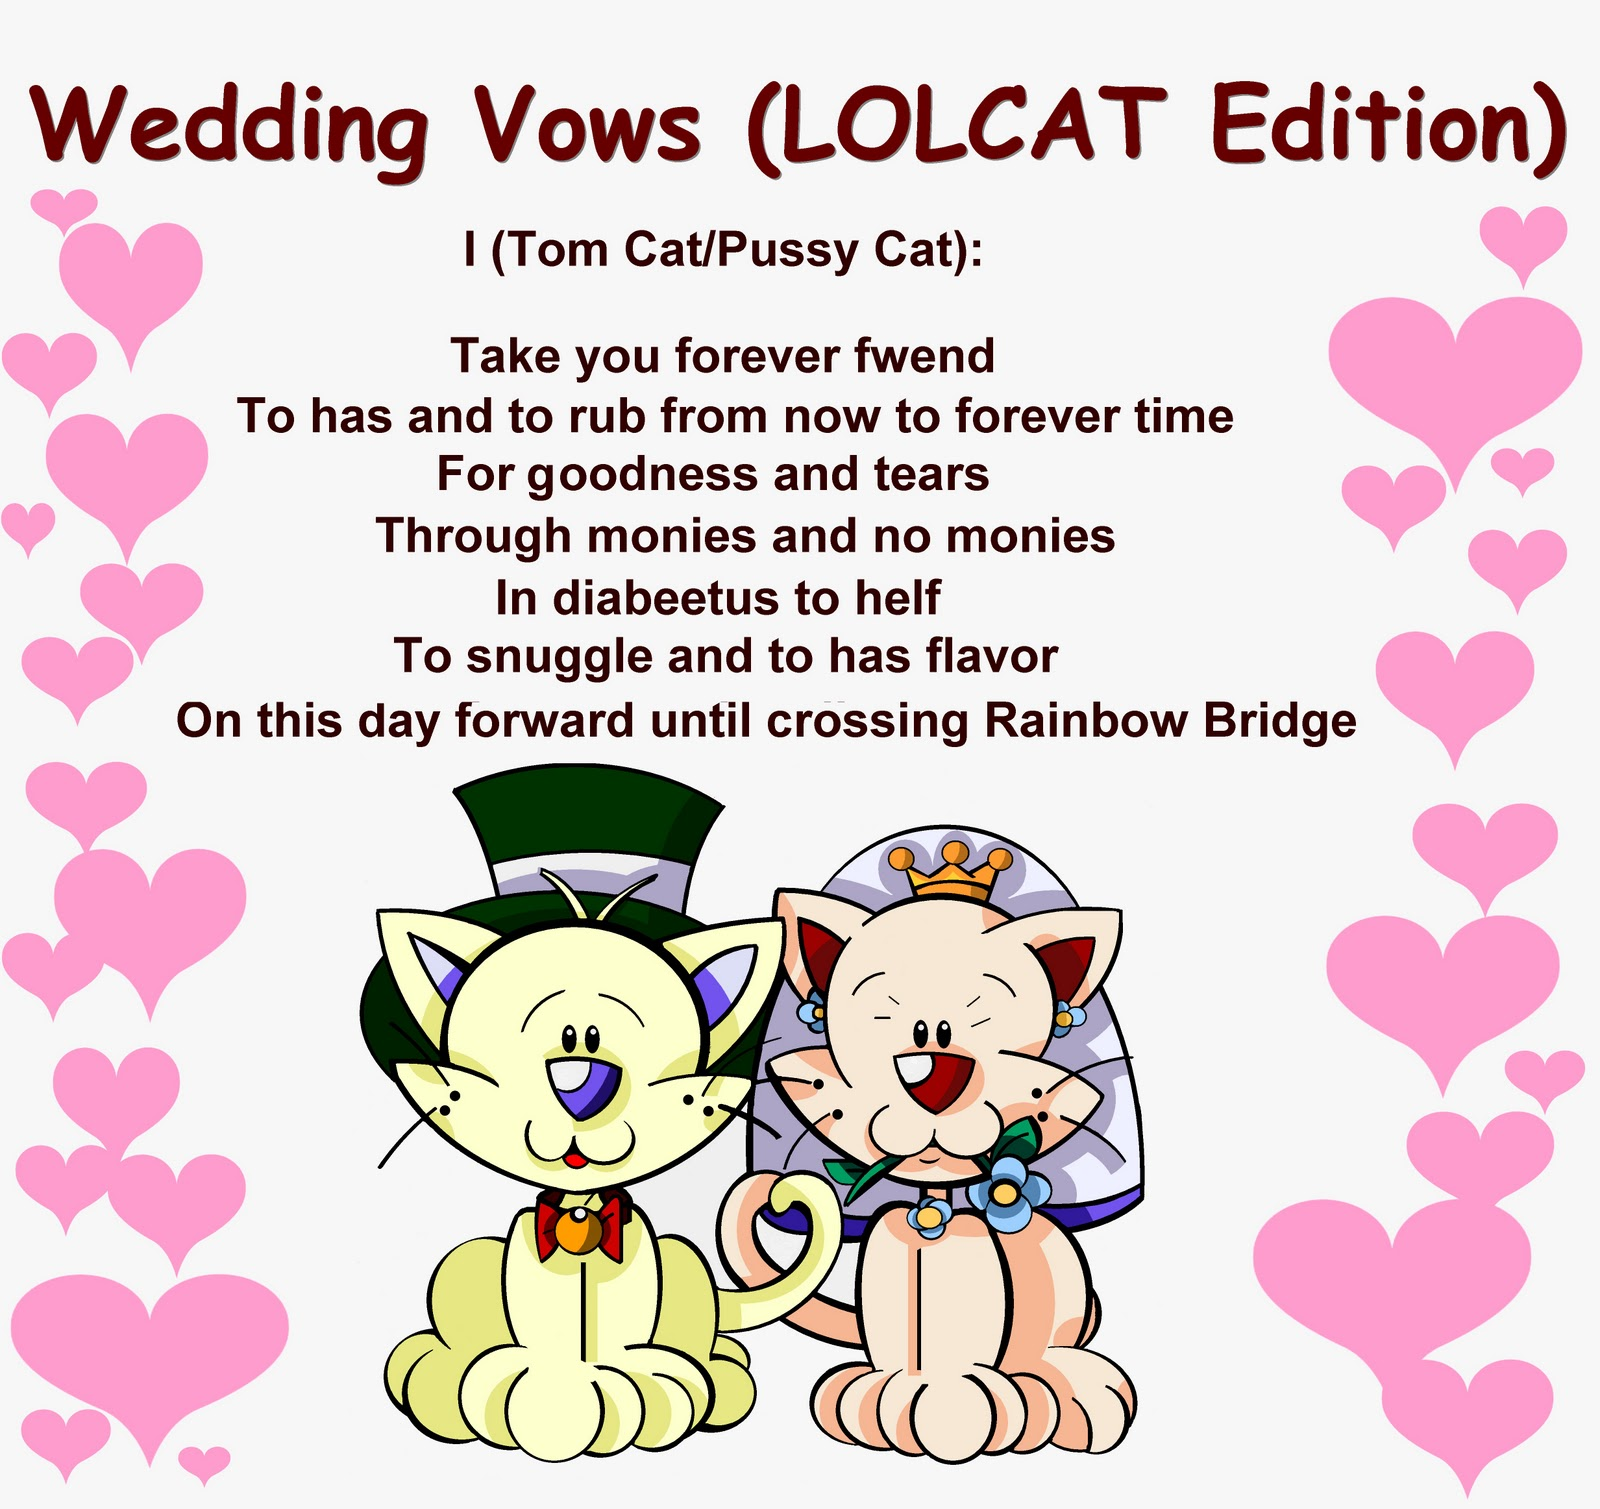 Christian Weddings Vows Wedding Vows